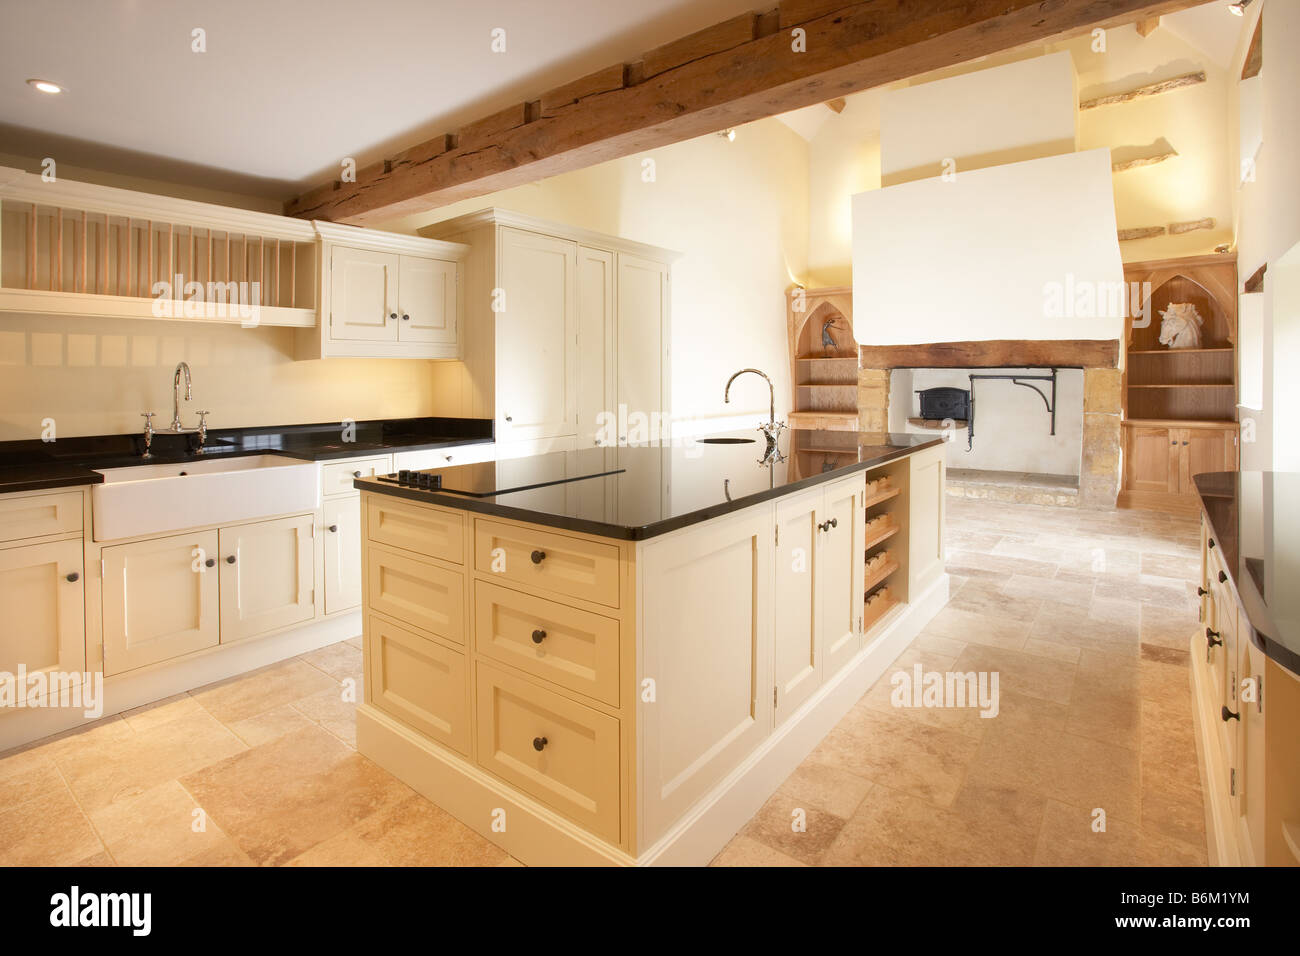 Limestone Kitchen Floor Modern Cream Quaker Style Kitchen In Old House With Inglenook